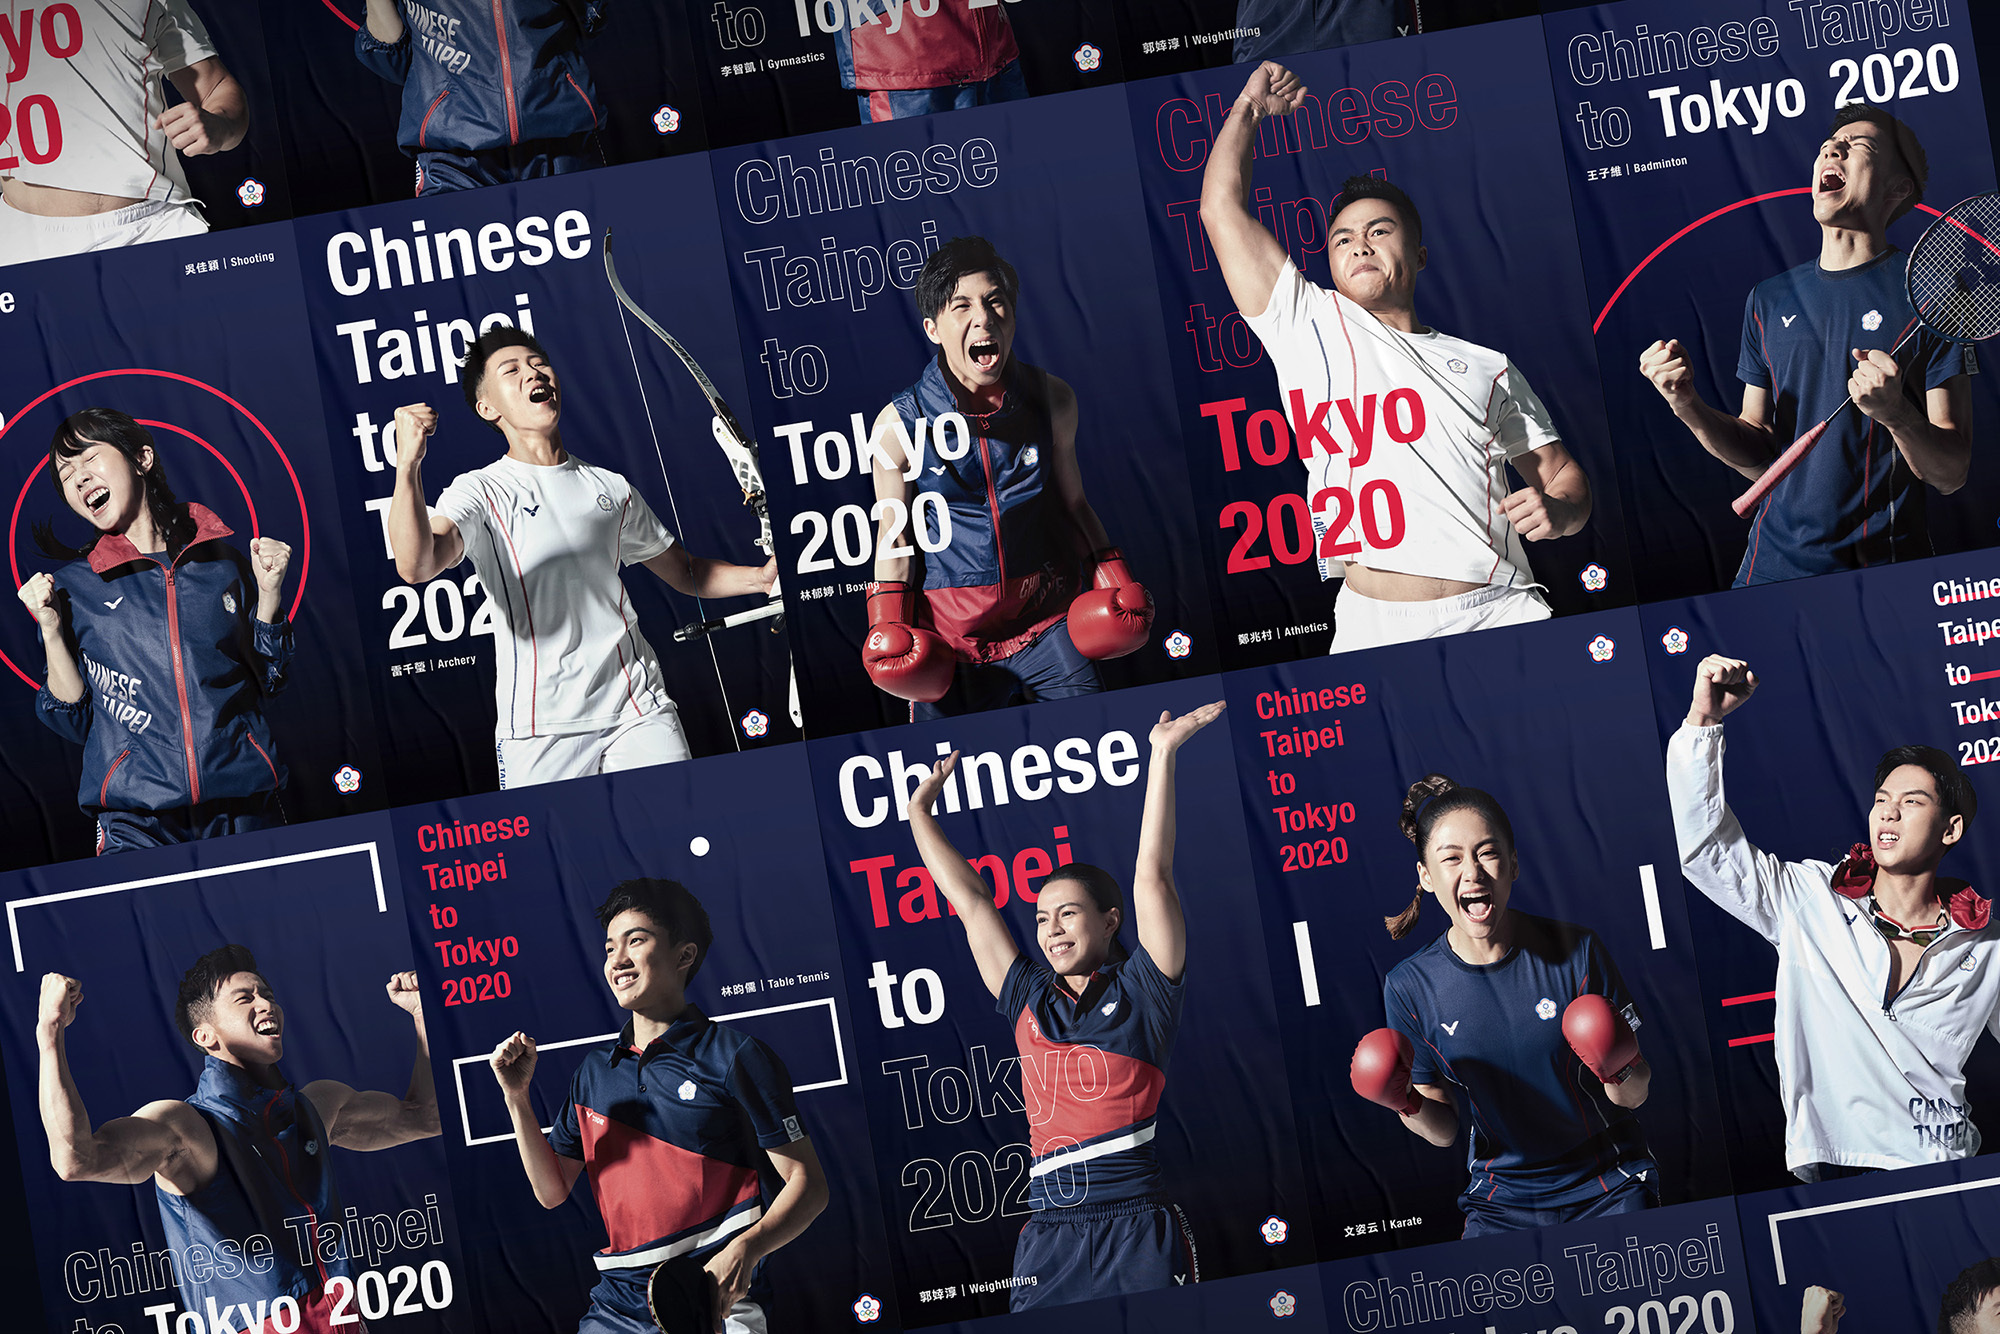 Primary Visual Design for the 2020 Tokyo Olympics Chinese Taipei Team